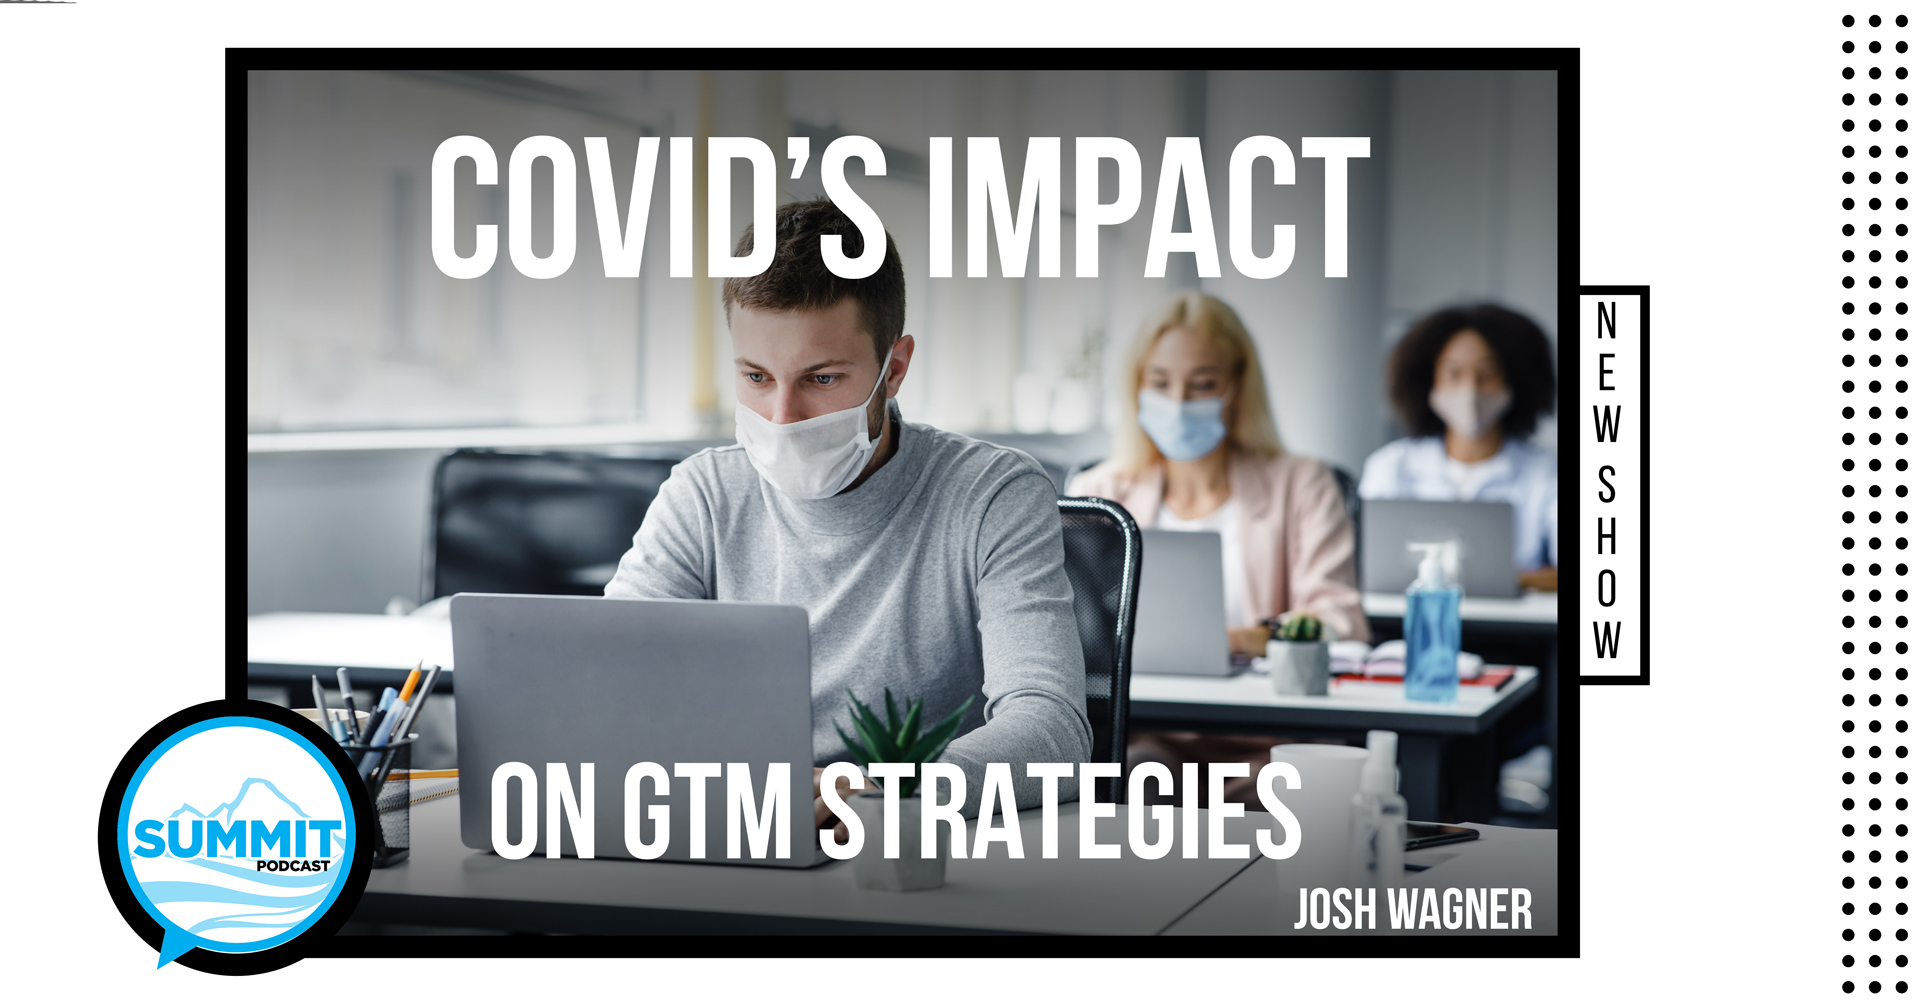 How online events have changed after COVID-19